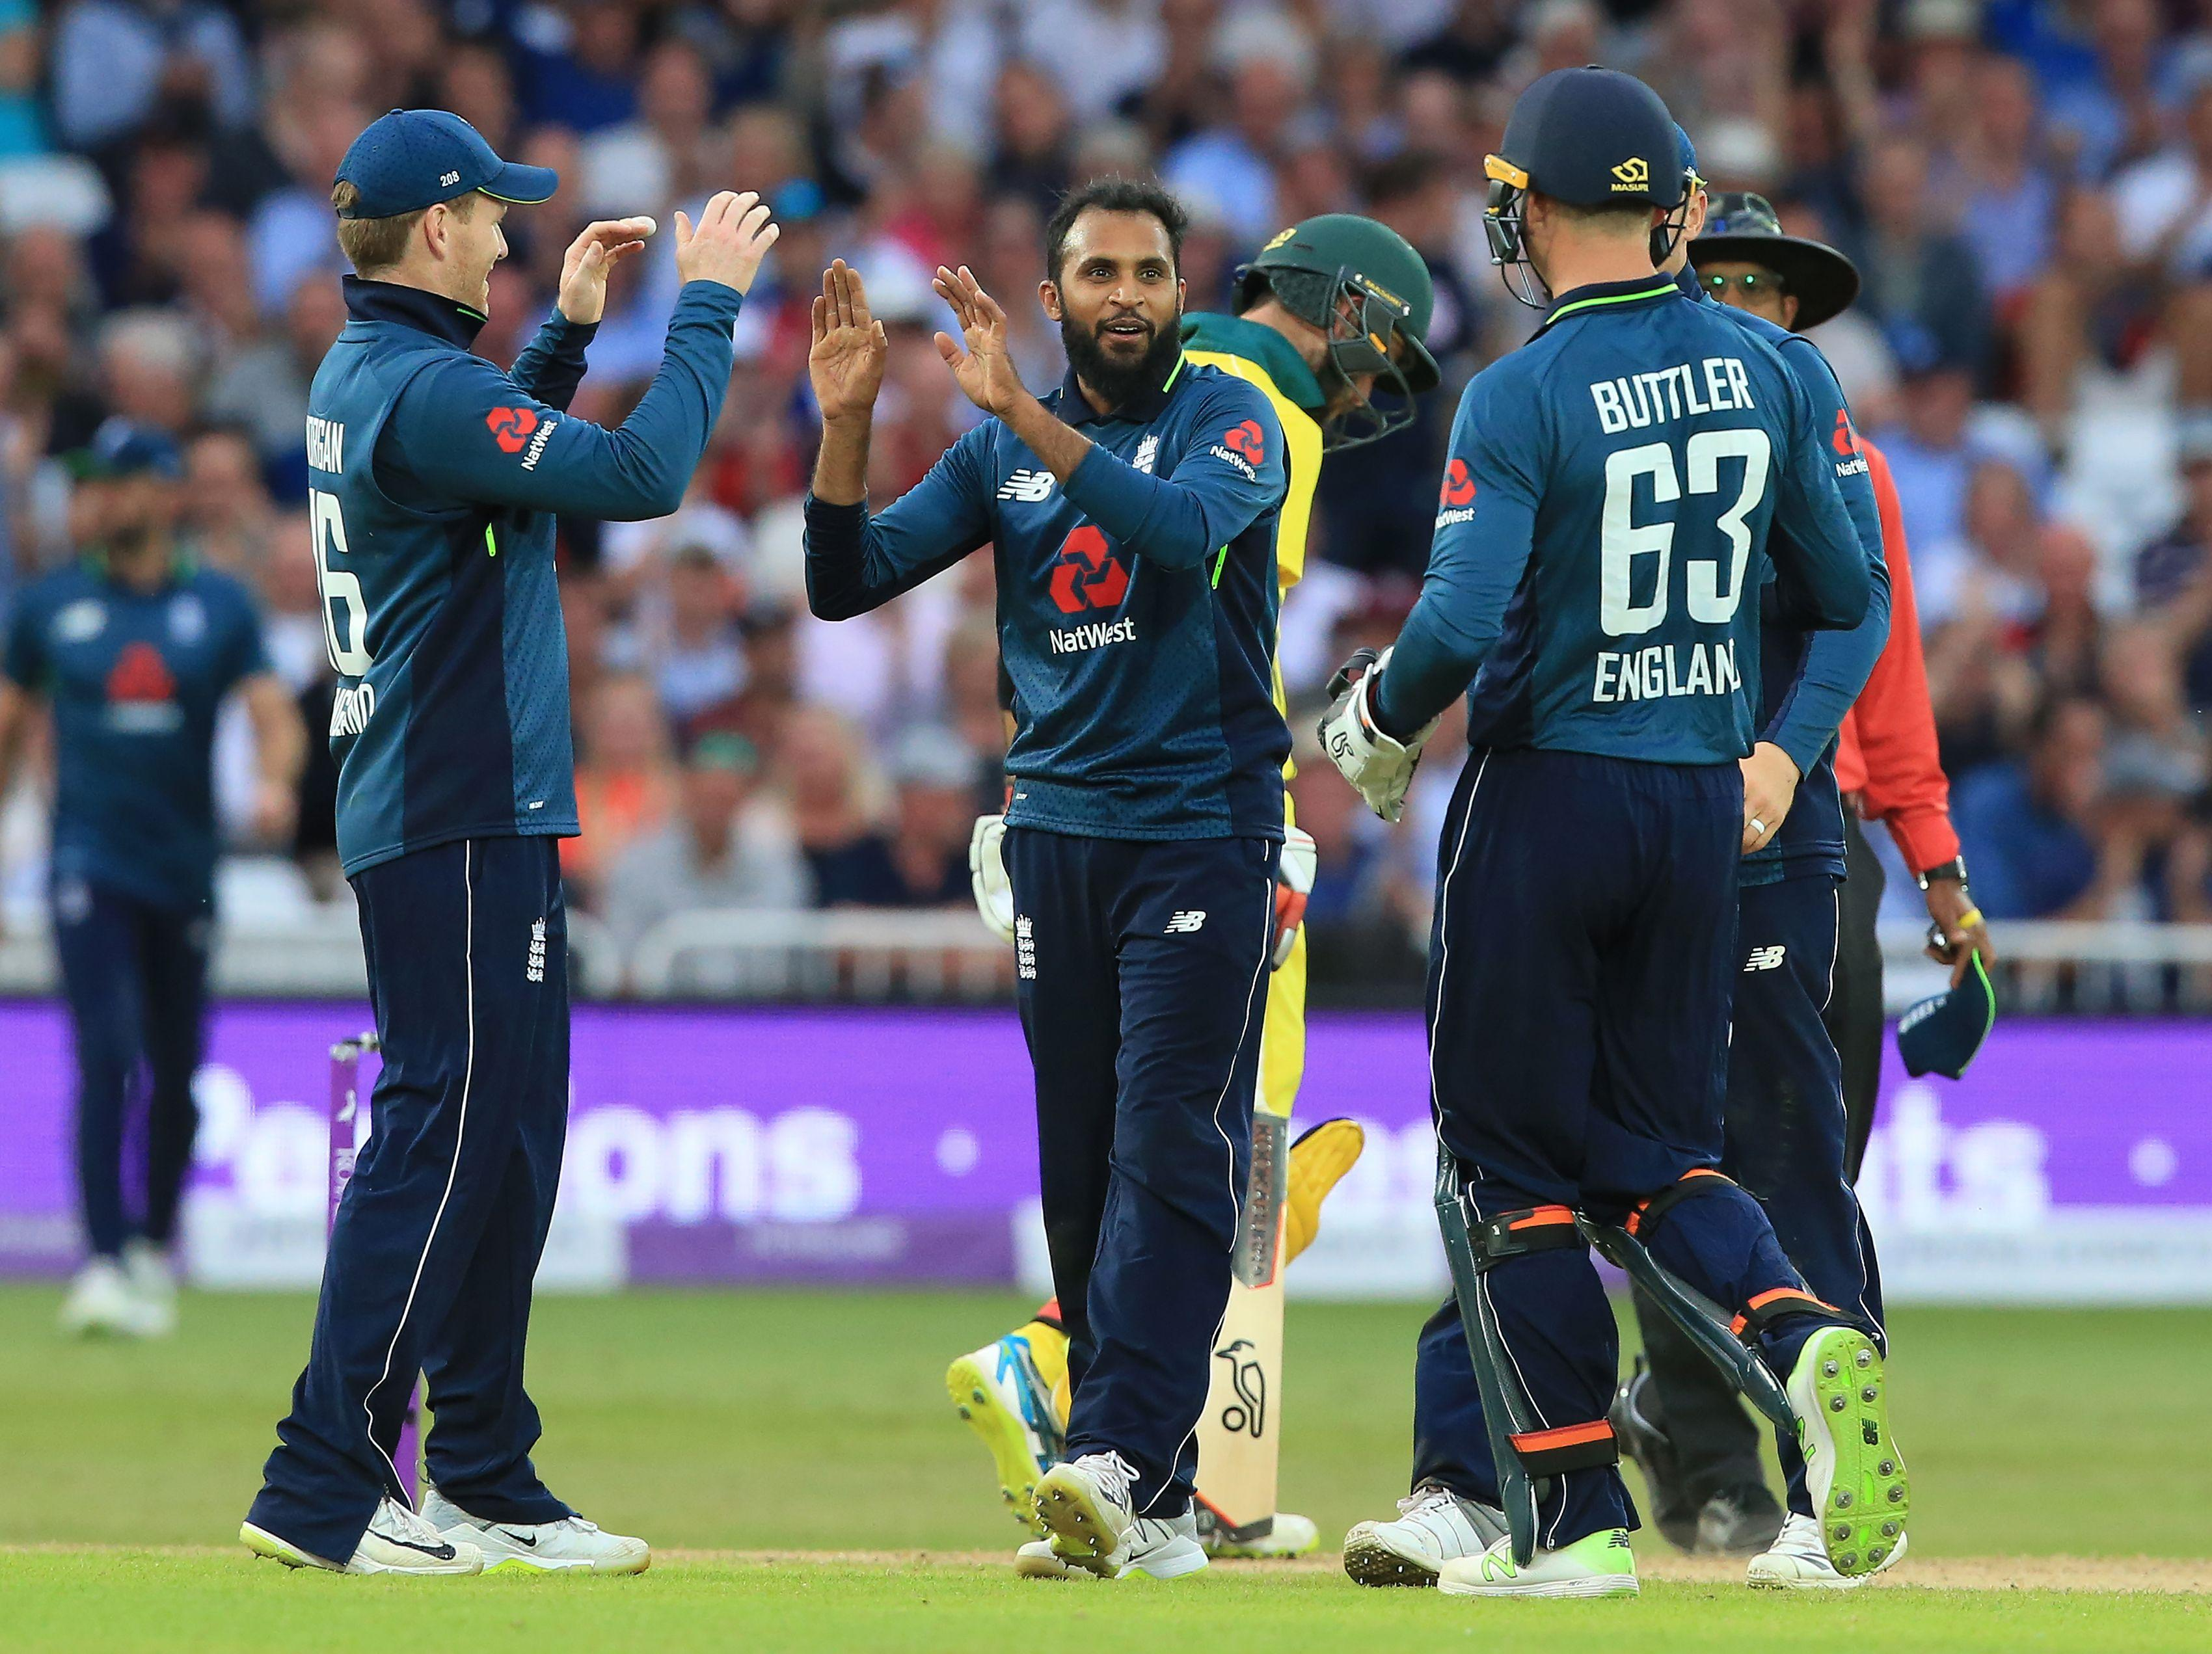 England's spinners took seven wickets between them in the crushing win